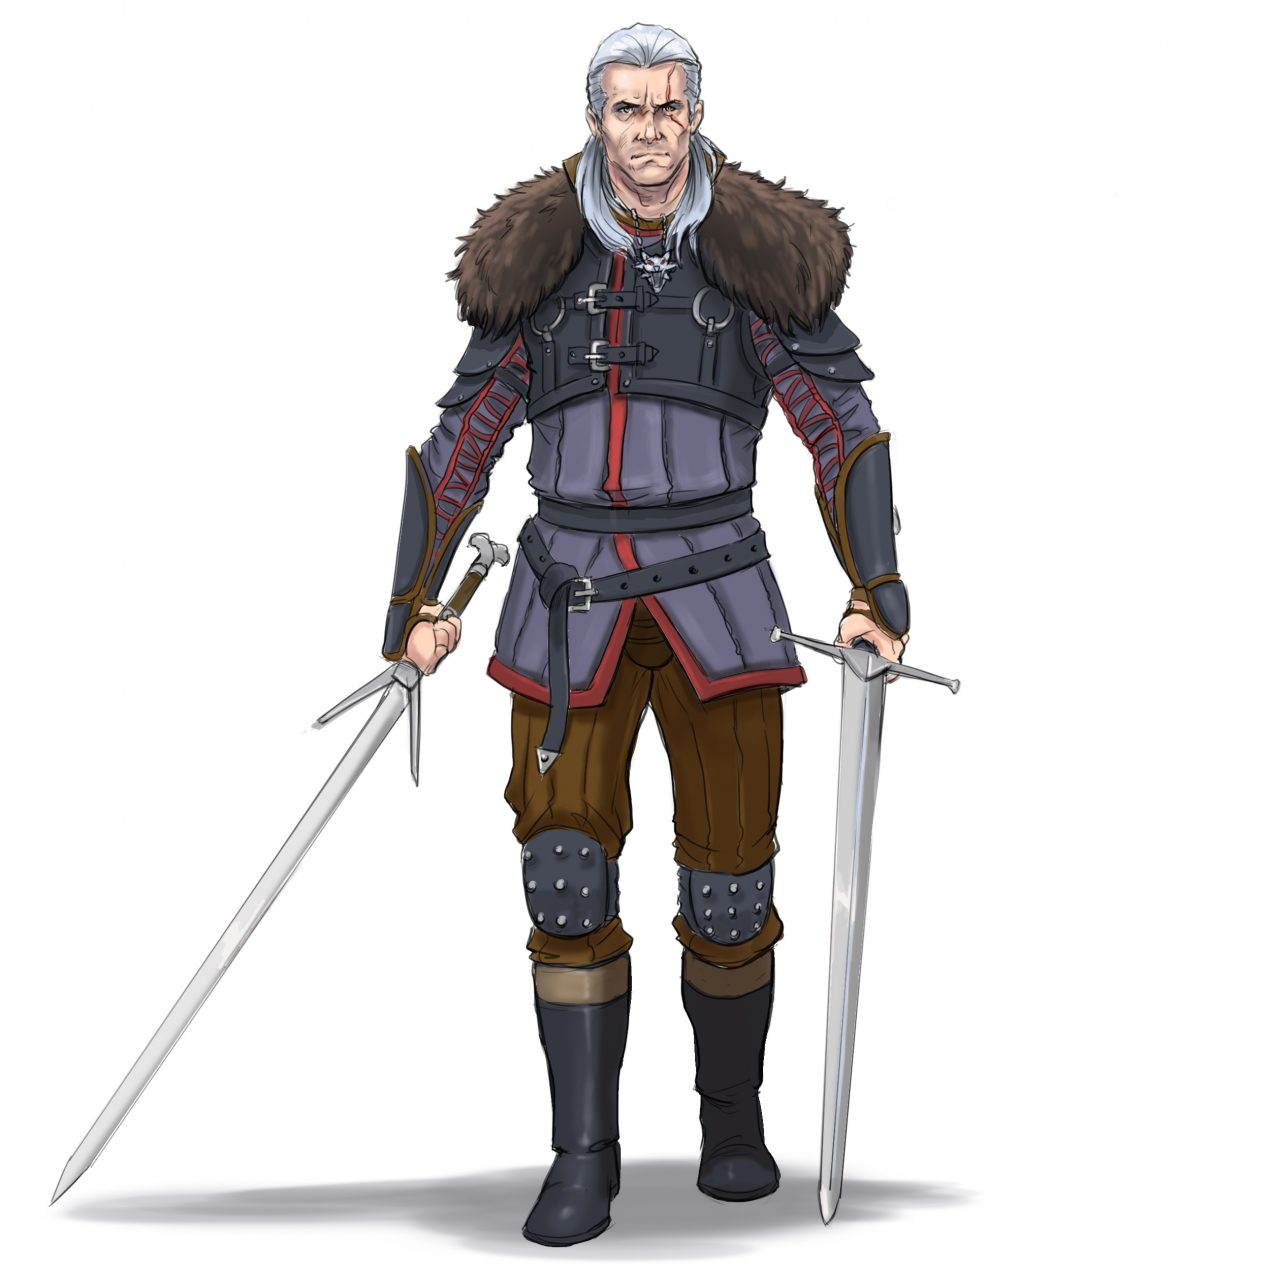 How to Draw Geralt of Rivia from The Witcher (with Pictures)